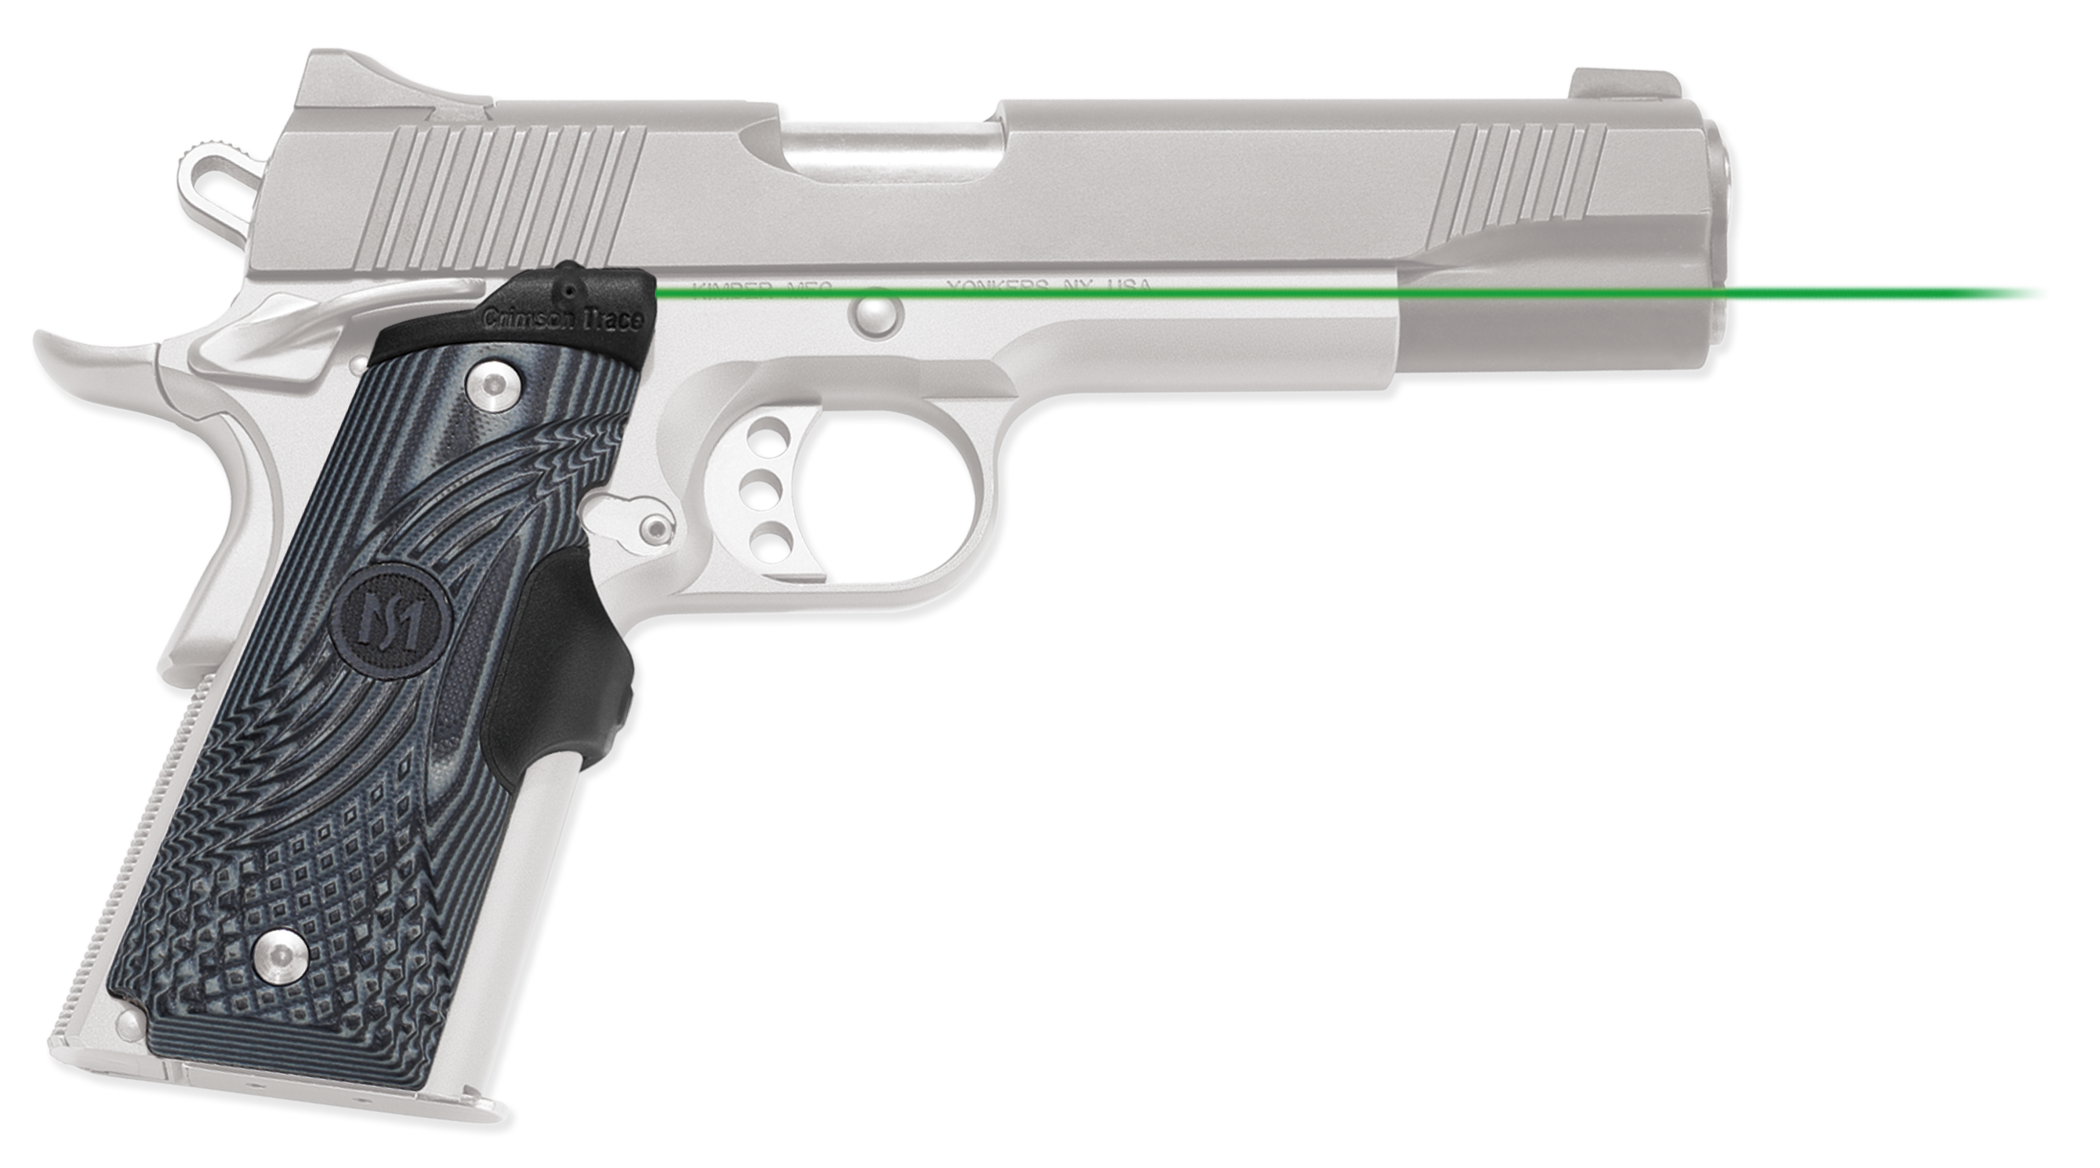 Crimson Trace® Master Series™ Lasergrips® - 1911 Full Size - G10 - Green Laser